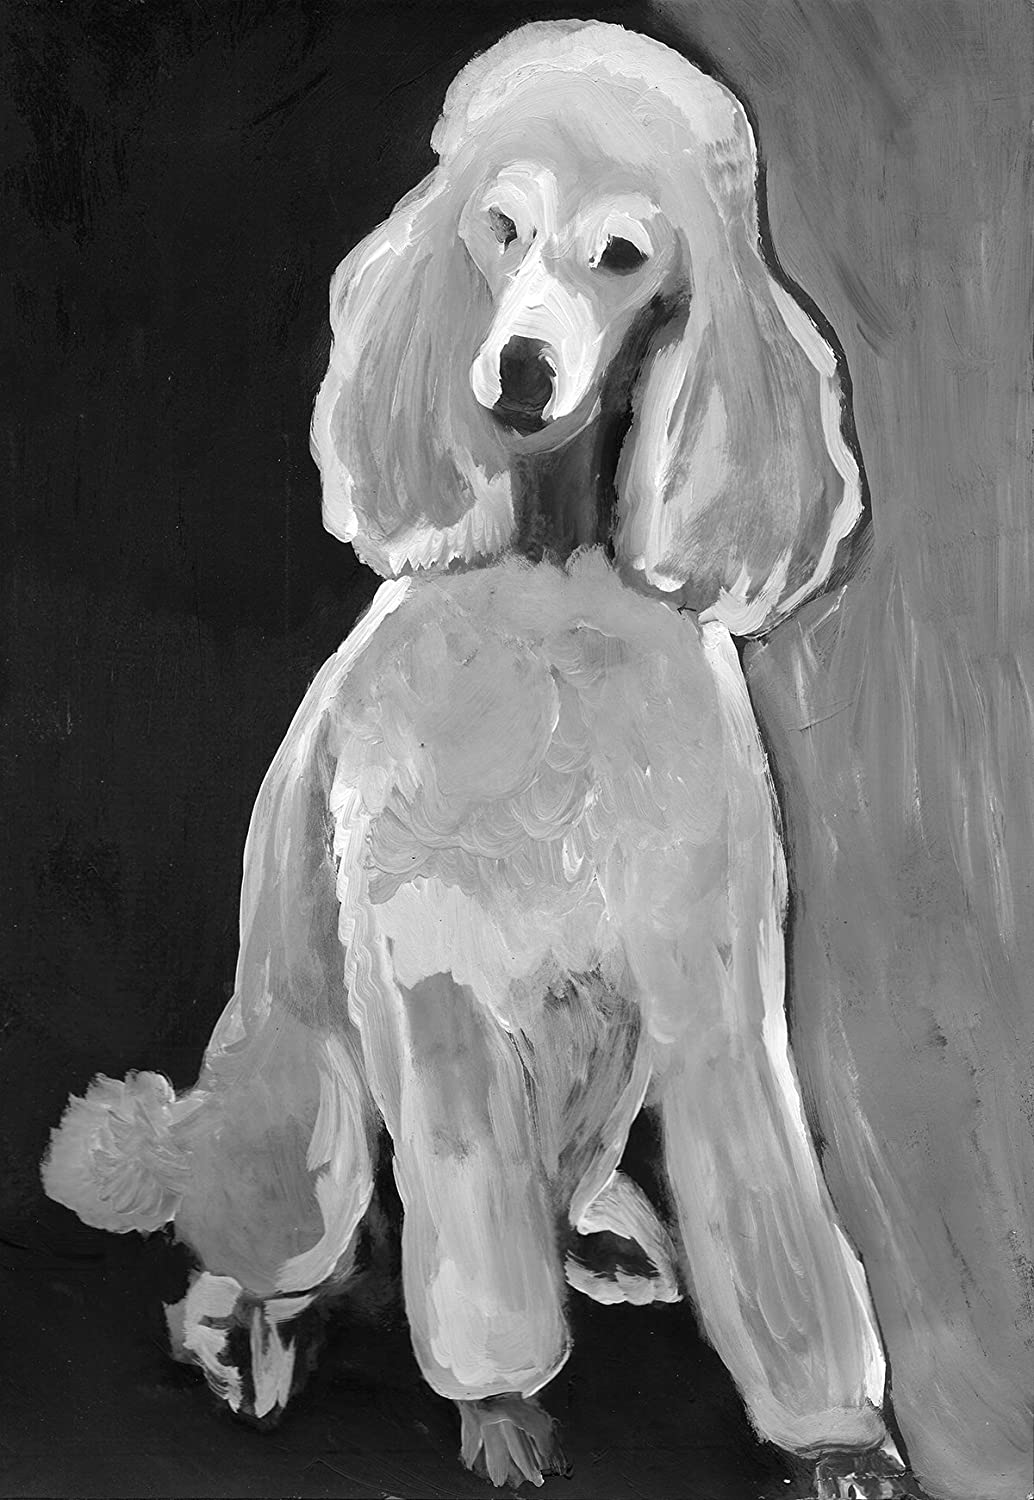 Poodle Art Print Two Tone Black White Poodle Mom Gift Idea Standard Poodle Lover Neutral Home Decor Art Dog Painting Signed By Oscar Jetson